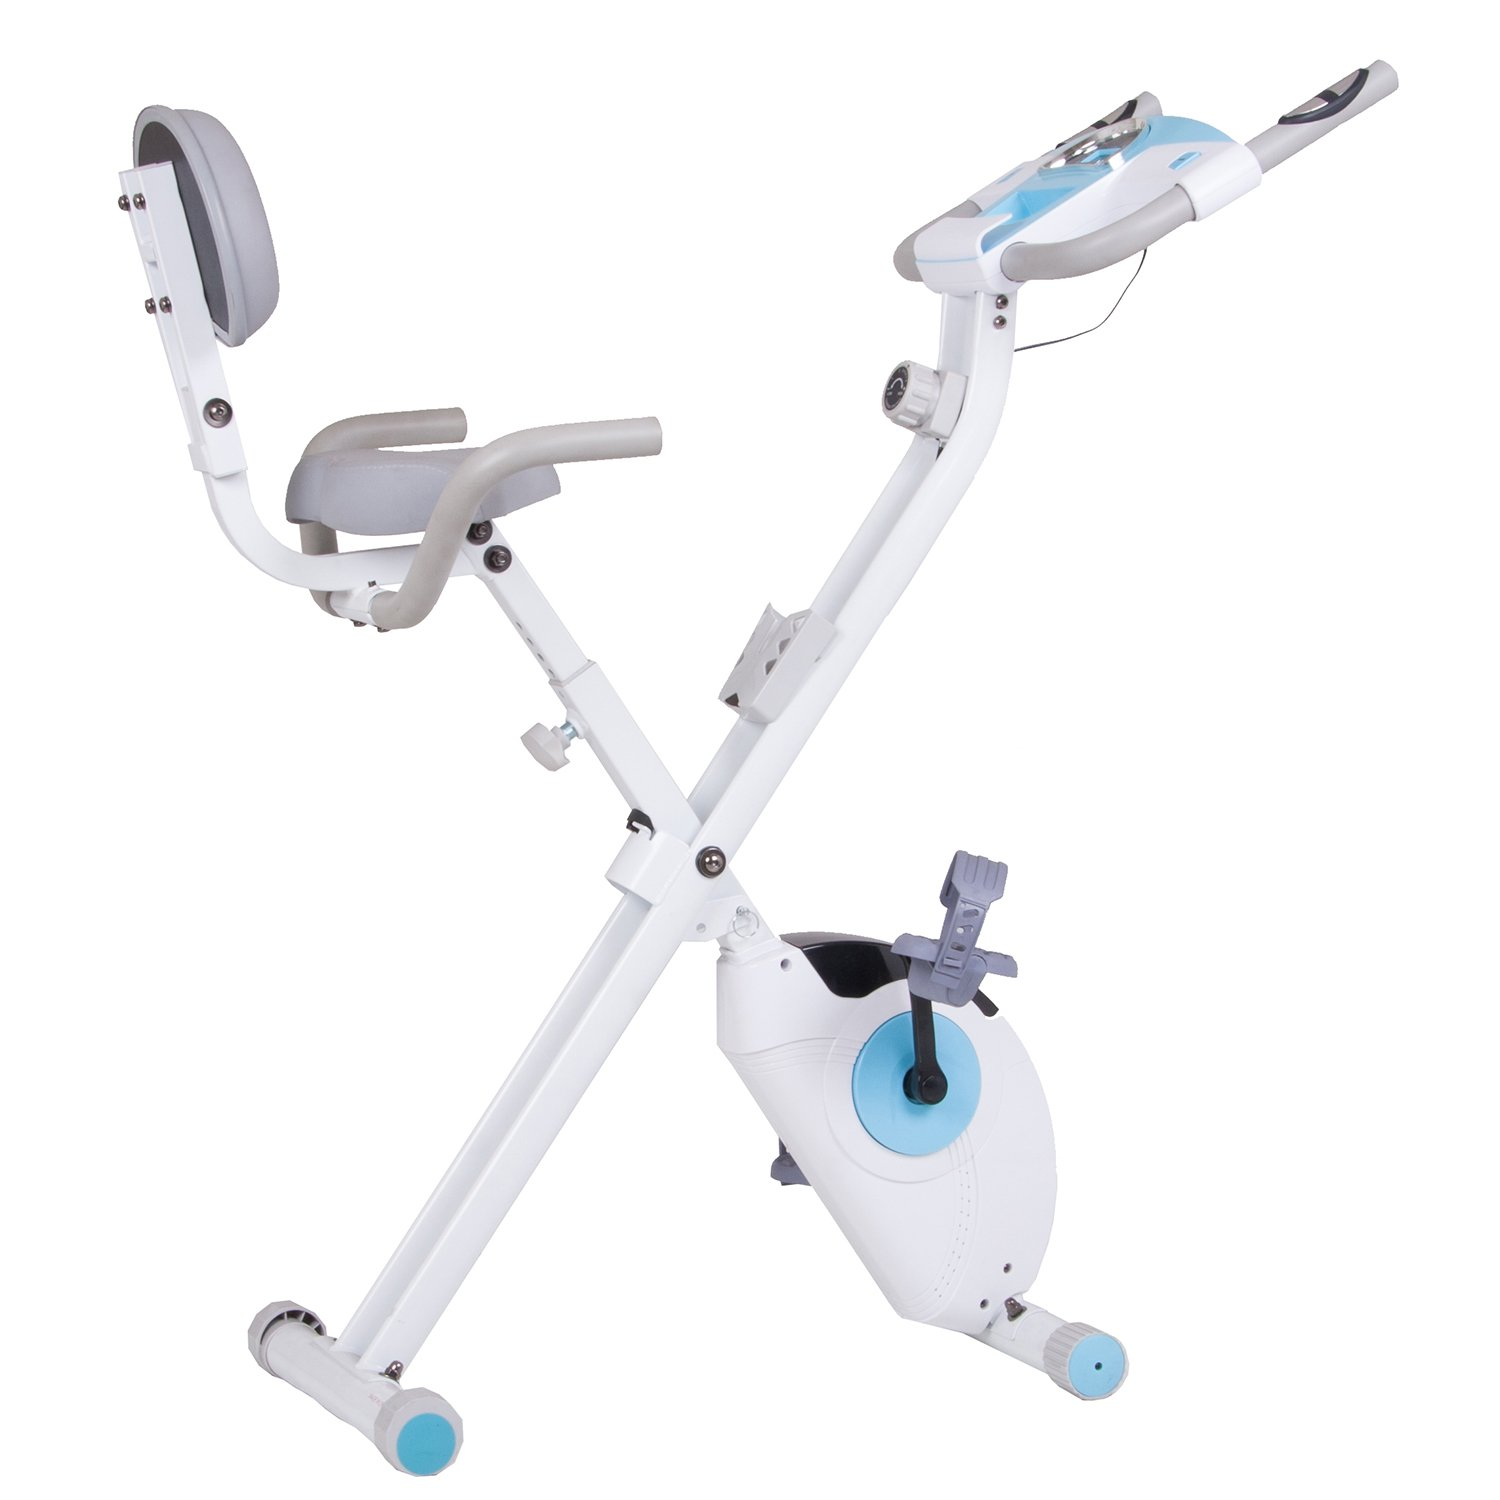 NEW LAUNCH DISCOUNT Body Rider Leisa Hart Folding Exercise Bike with Back Rest, Retro Screen Monitor, Heart Pulse Monitor, and Magnetic Adjustable Resistance for Full Body Workout